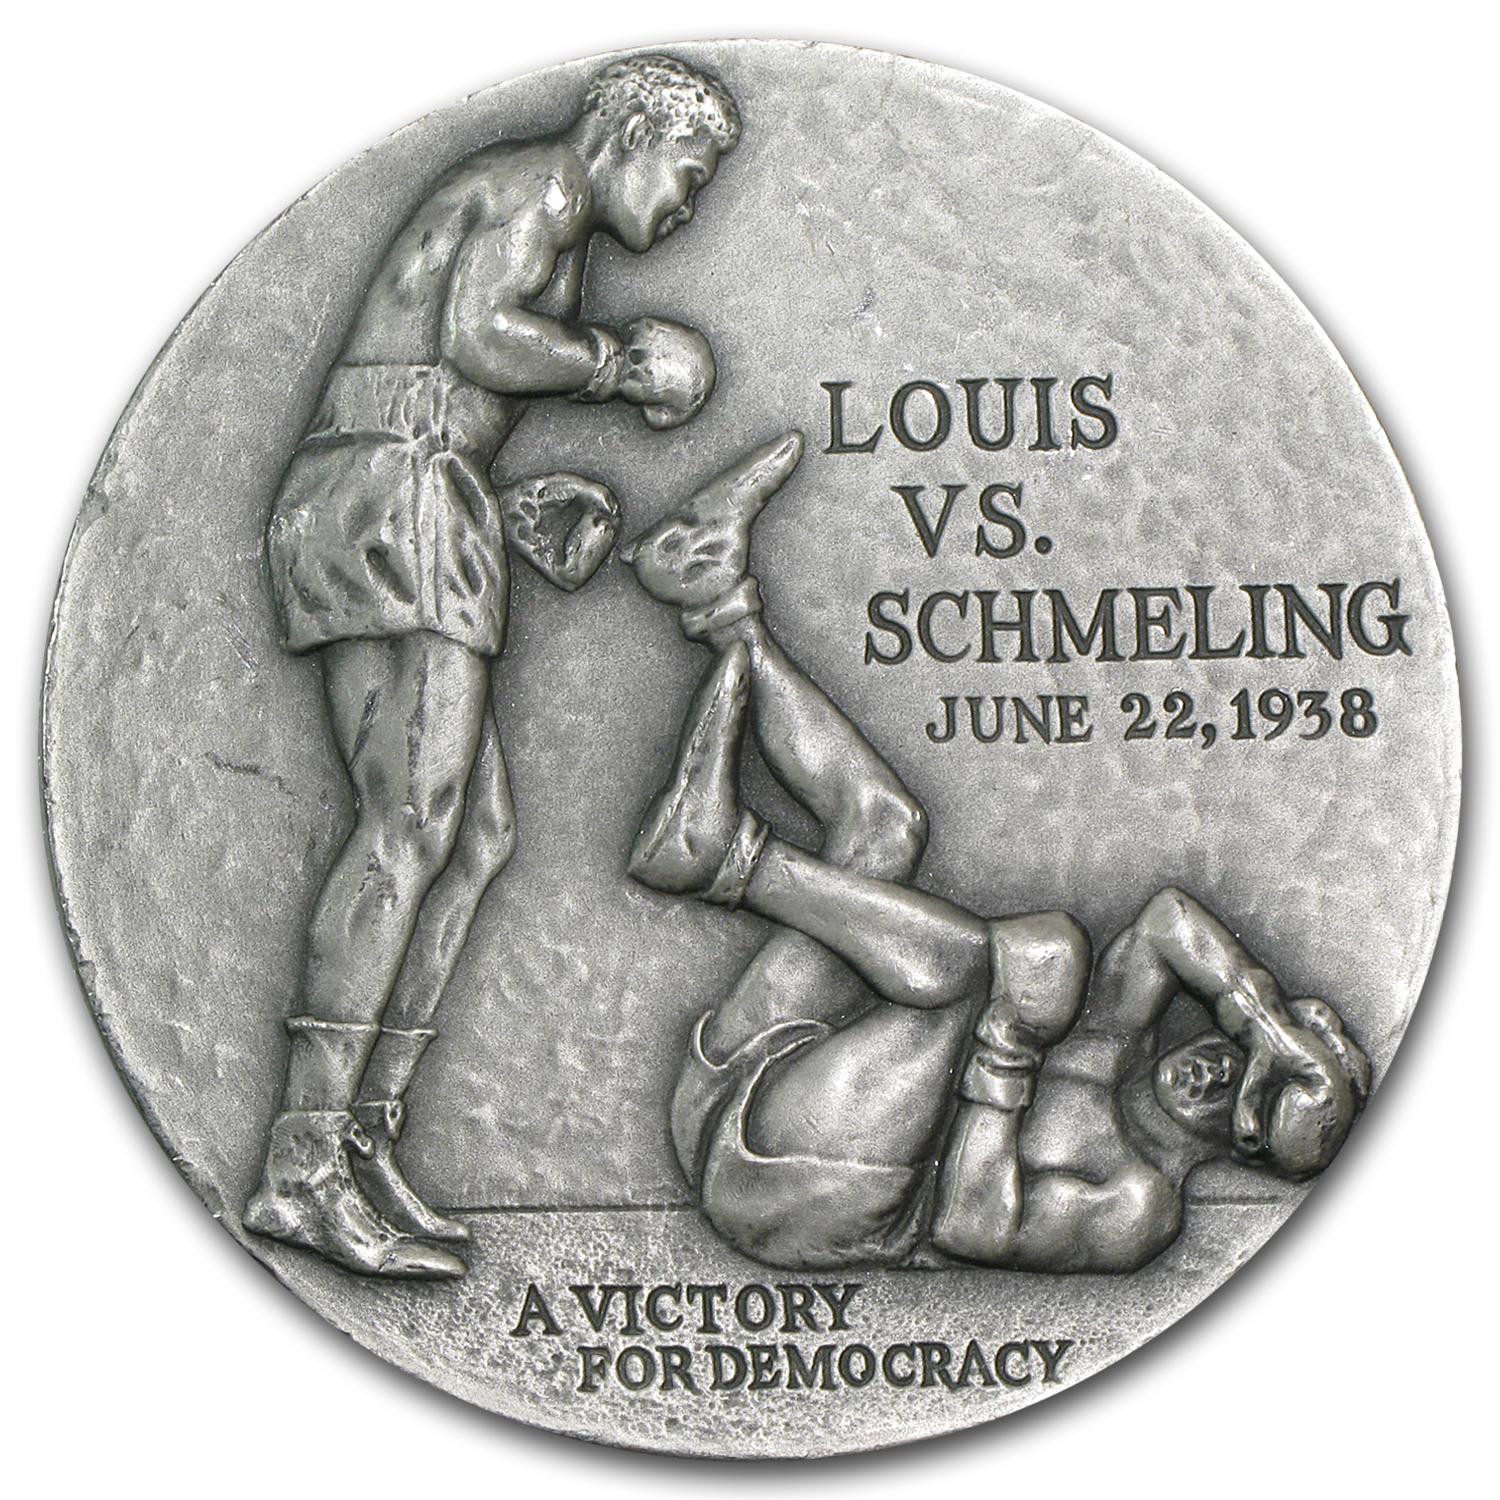 4.98 oz Silver Round - Joe Louis